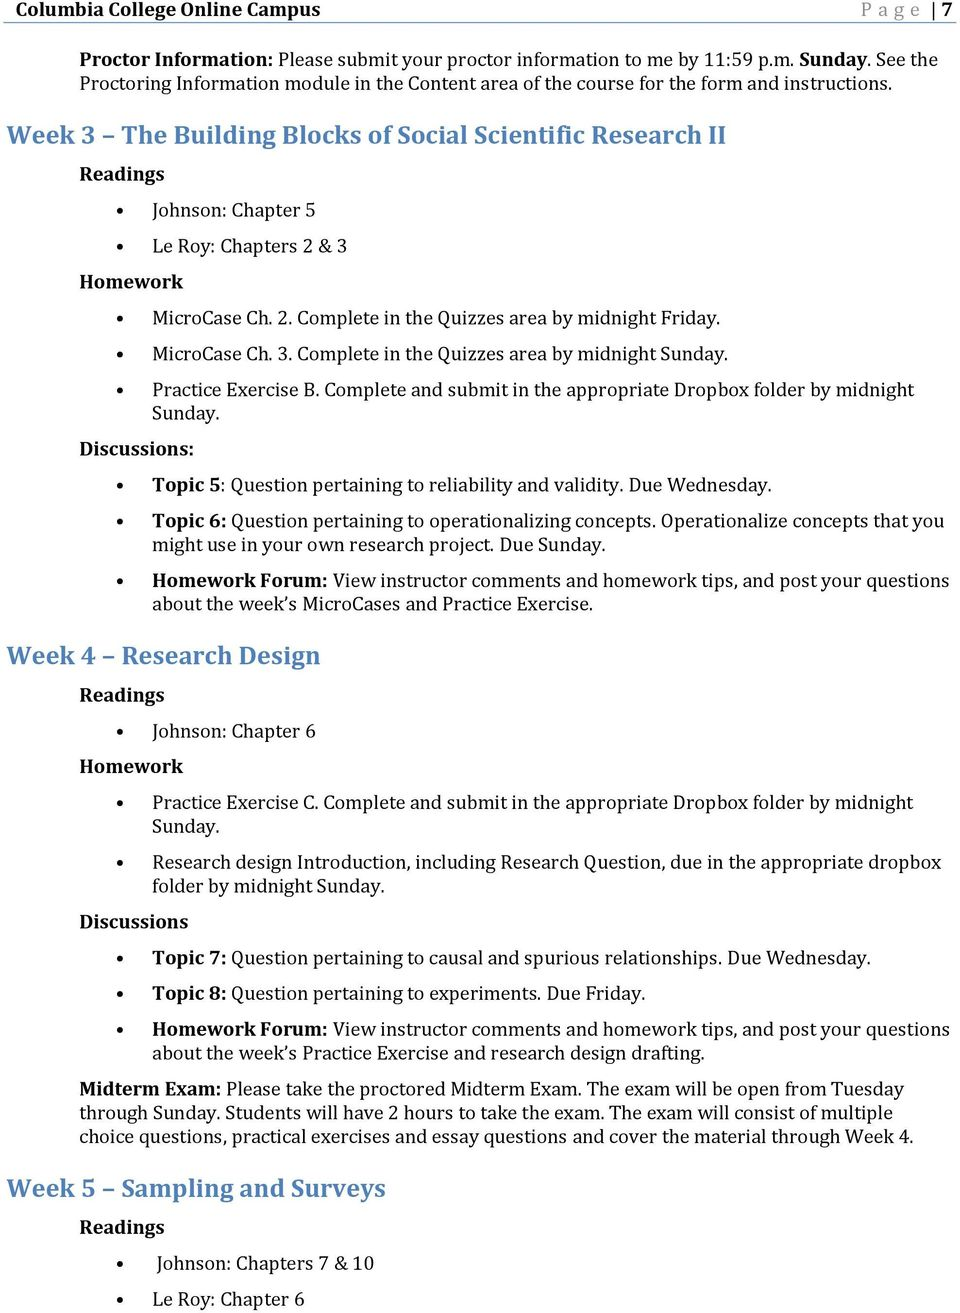 Week 3 The Building Blocks of Social Scientific Research II Johnson: Chapter 5 Le Roy: Chapters 2 & 3 MicroCase Ch. 2. Complete in the Quizzes area by midnight Friday. MicroCase Ch. 3. Complete in the Quizzes area by midnight Sunday.